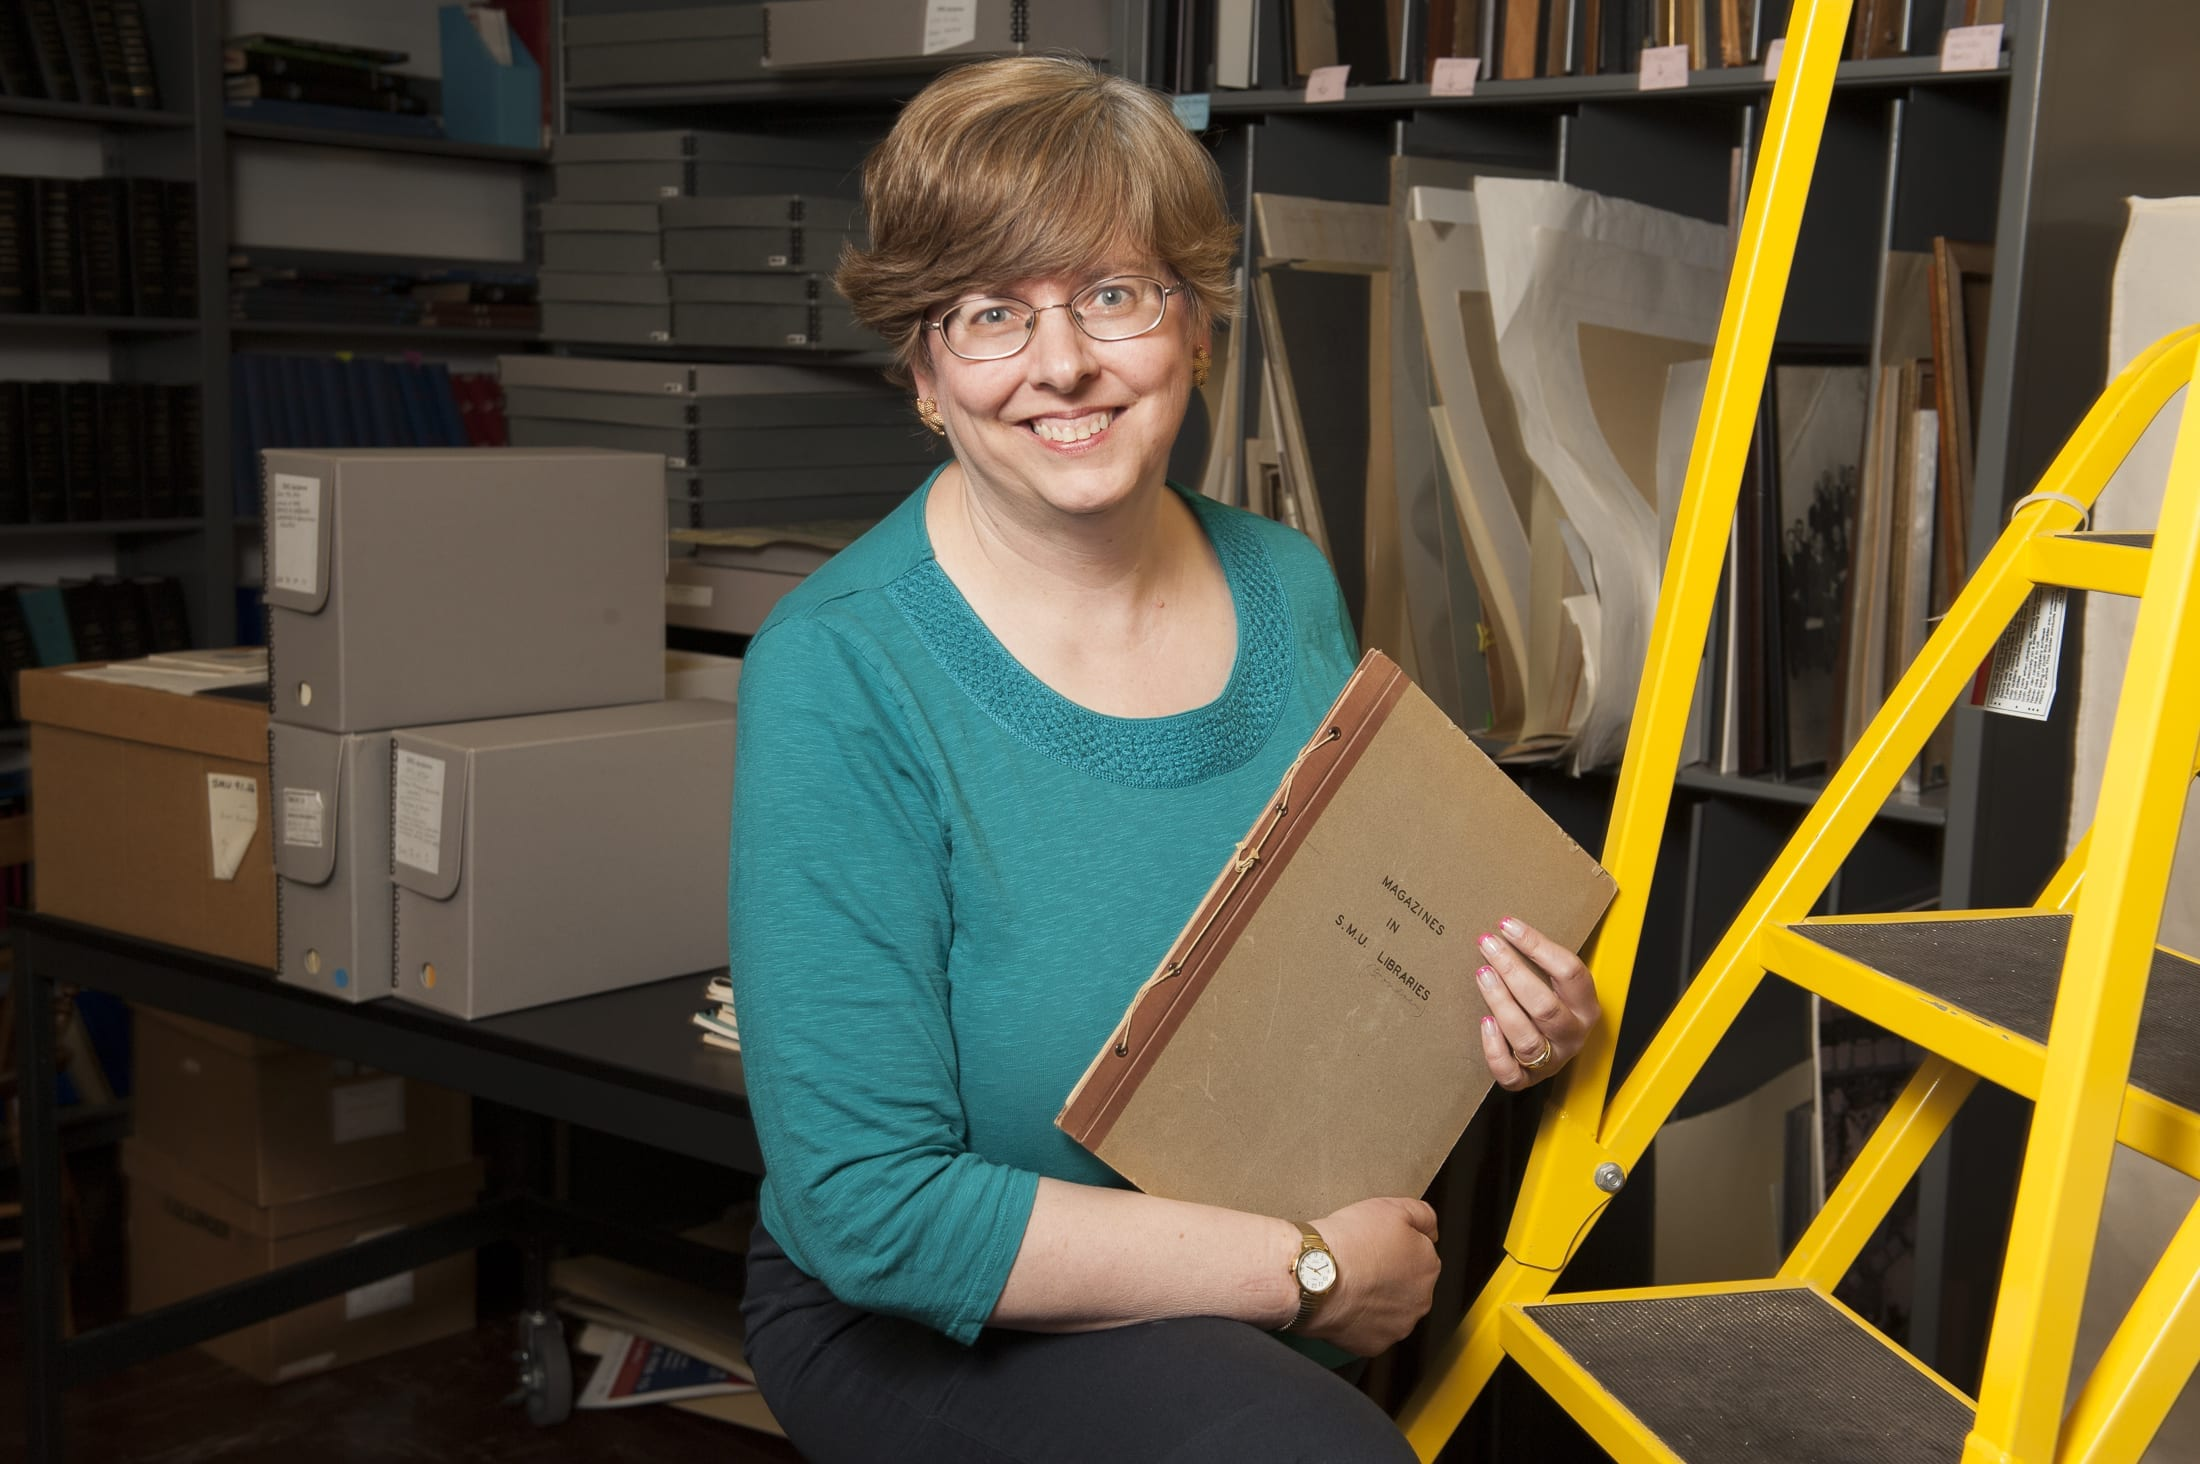 Why Archives? SMU Archivist, Joan Gosnell Explains